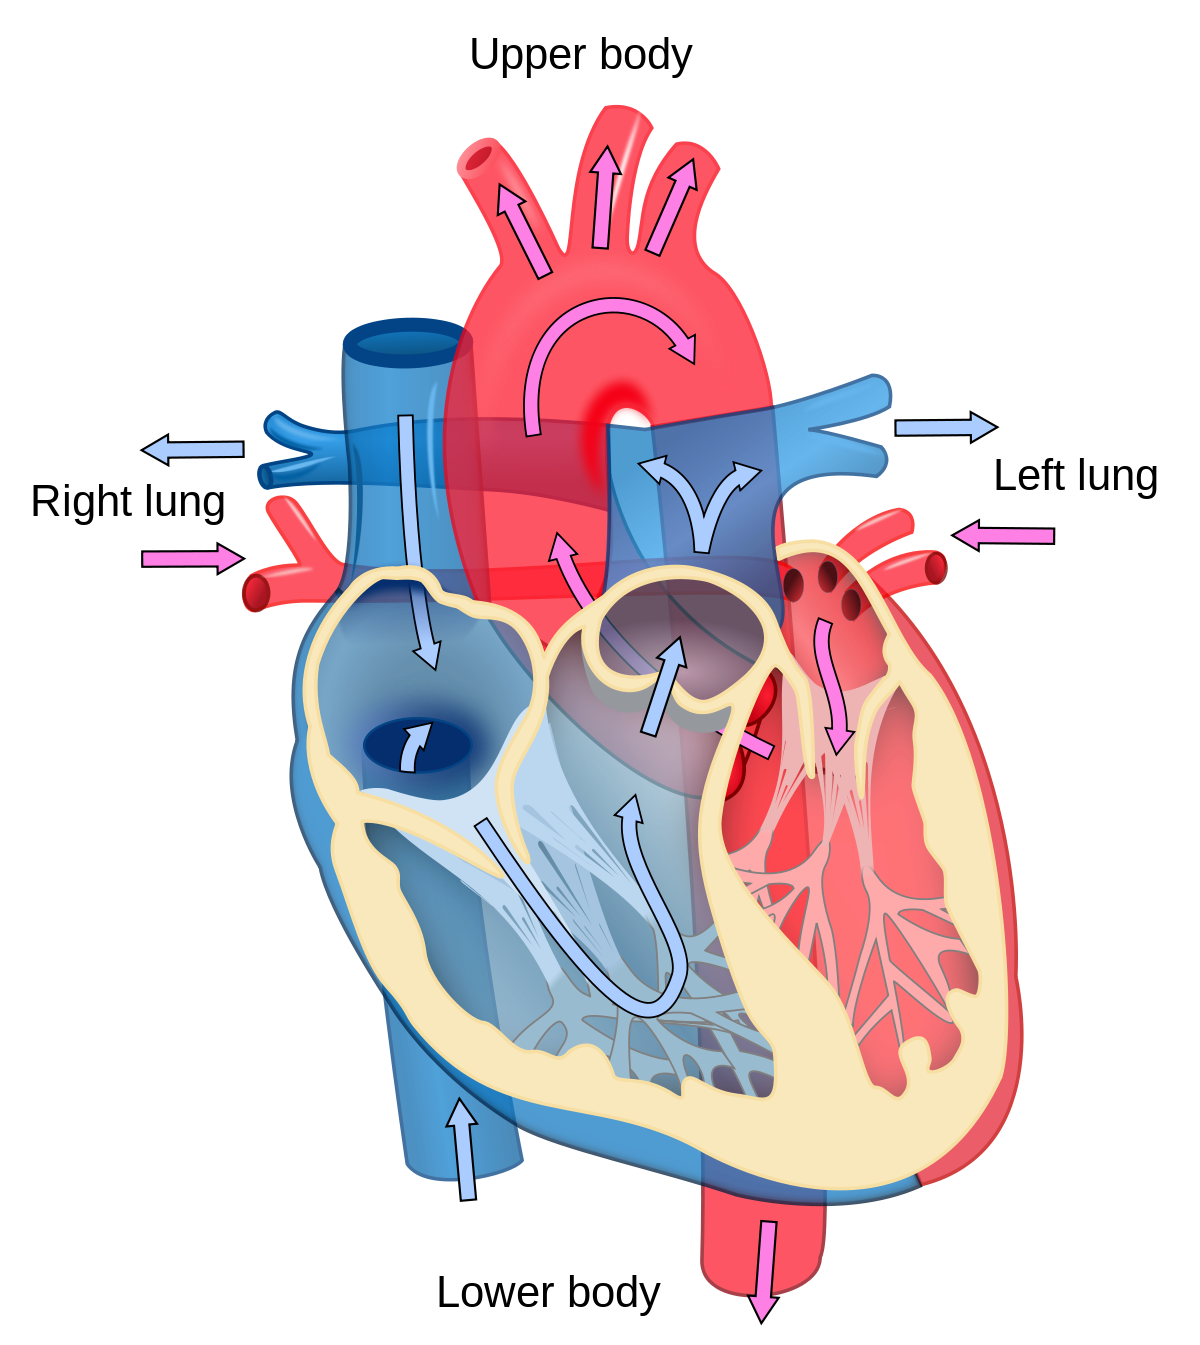 Textbook clipart unit rate. Cardiology wikipedia